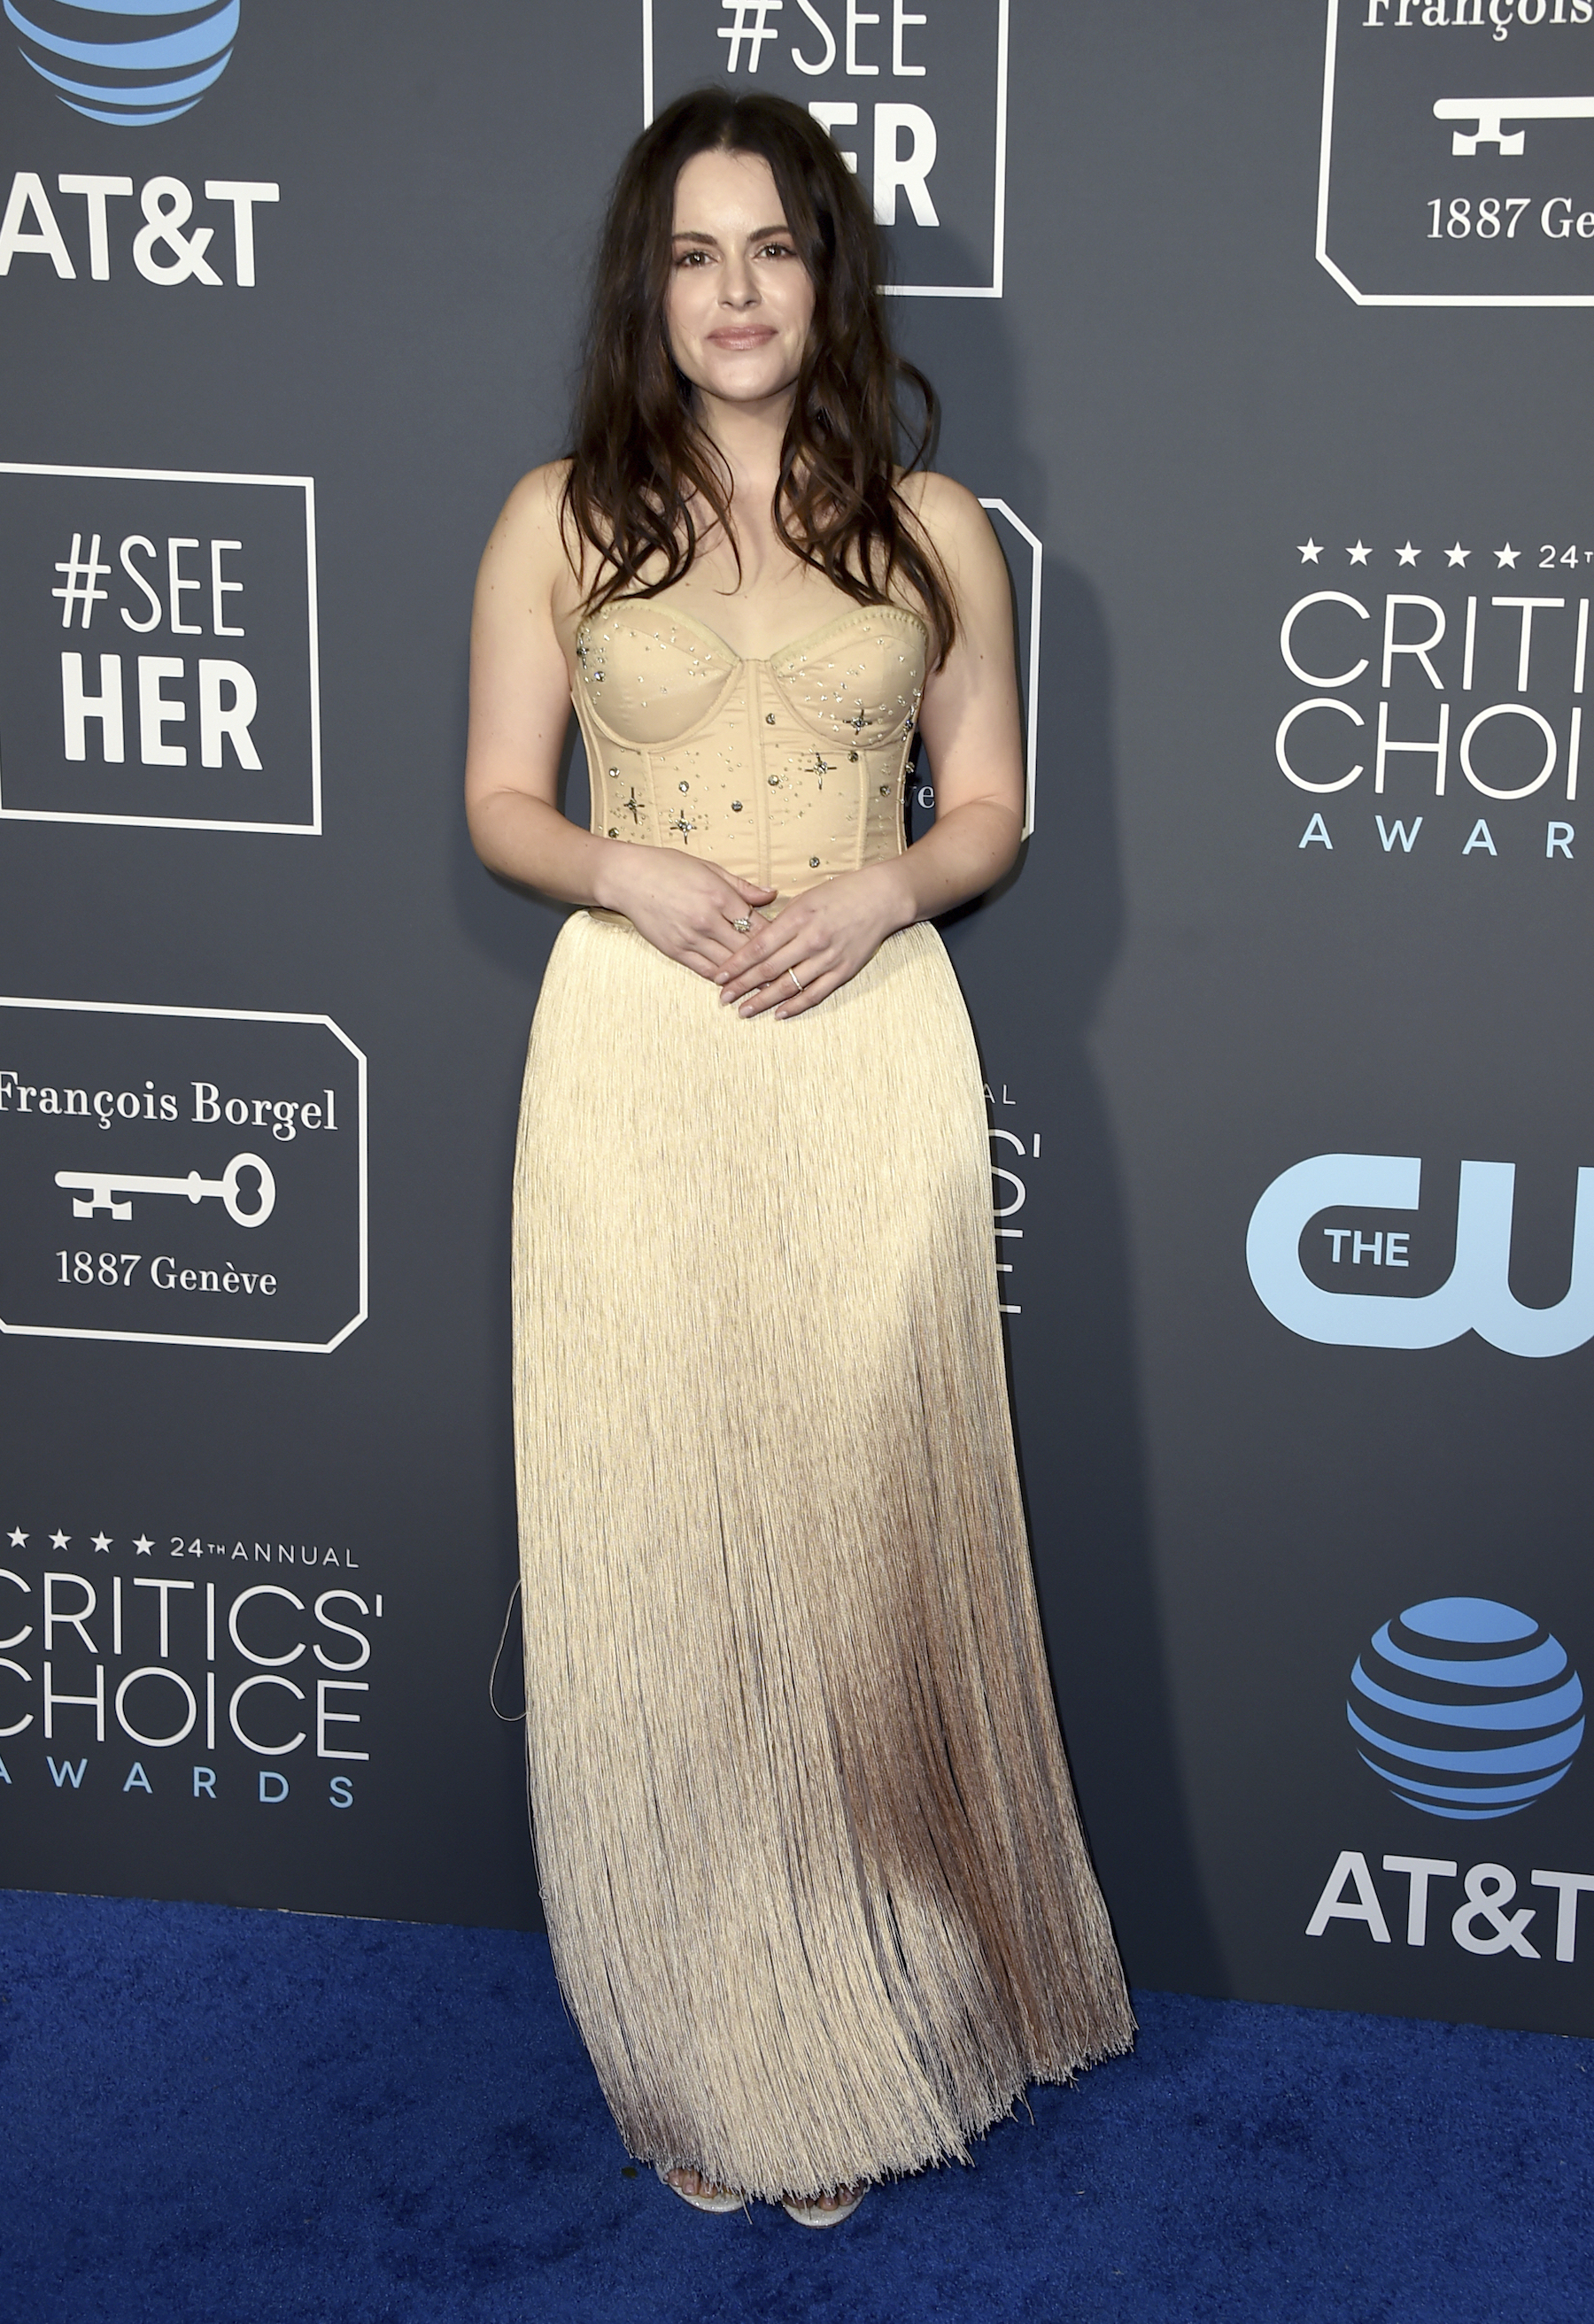 <div class='meta'><div class='origin-logo' data-origin='AP'></div><span class='caption-text' data-credit='Jordan Strauss/Invision/AP'>Emily Hampshire arrives at the 24th annual Critics' Choice Awards on Sunday, Jan. 13, 2019, at the Barker Hangar in Santa Monica, Calif.</span></div>